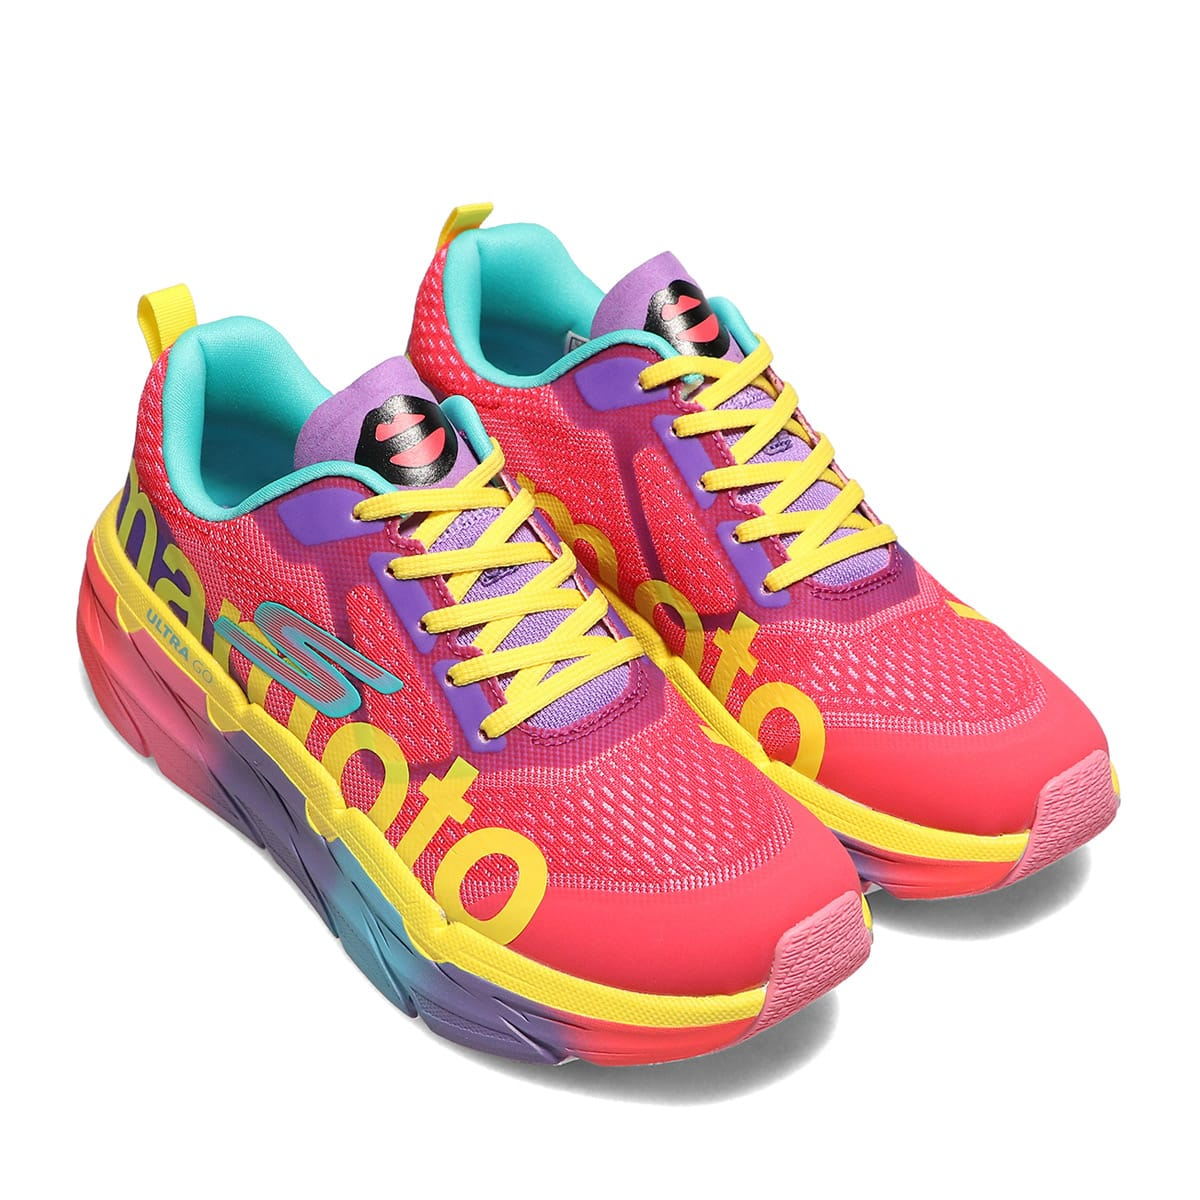 SKECHERS MAX CUSHIONING PREMIER-KY LUN PKMT 21FW-S_photo_large